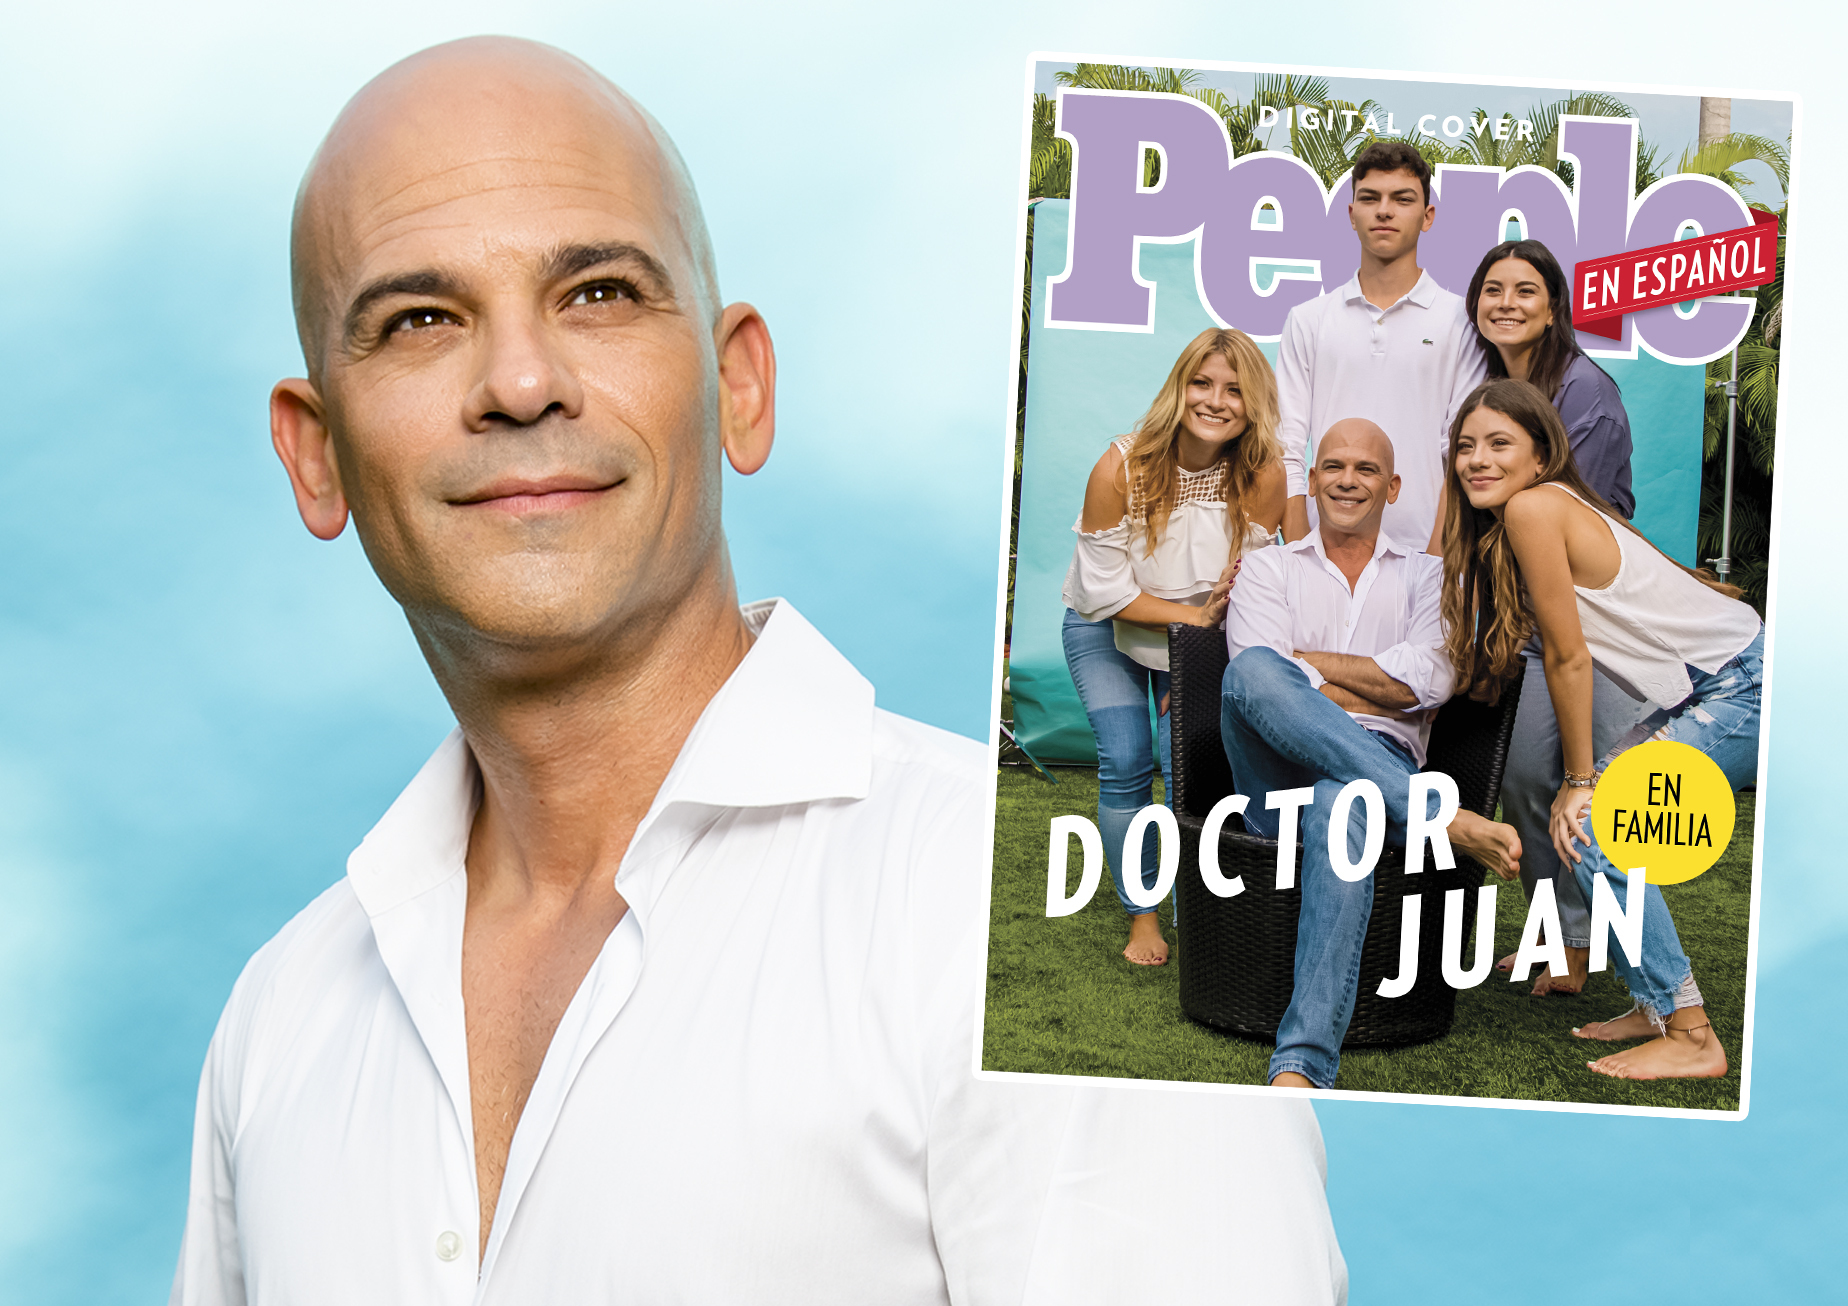 Dr. Juan Digital Cover (DO NOT REUSE)